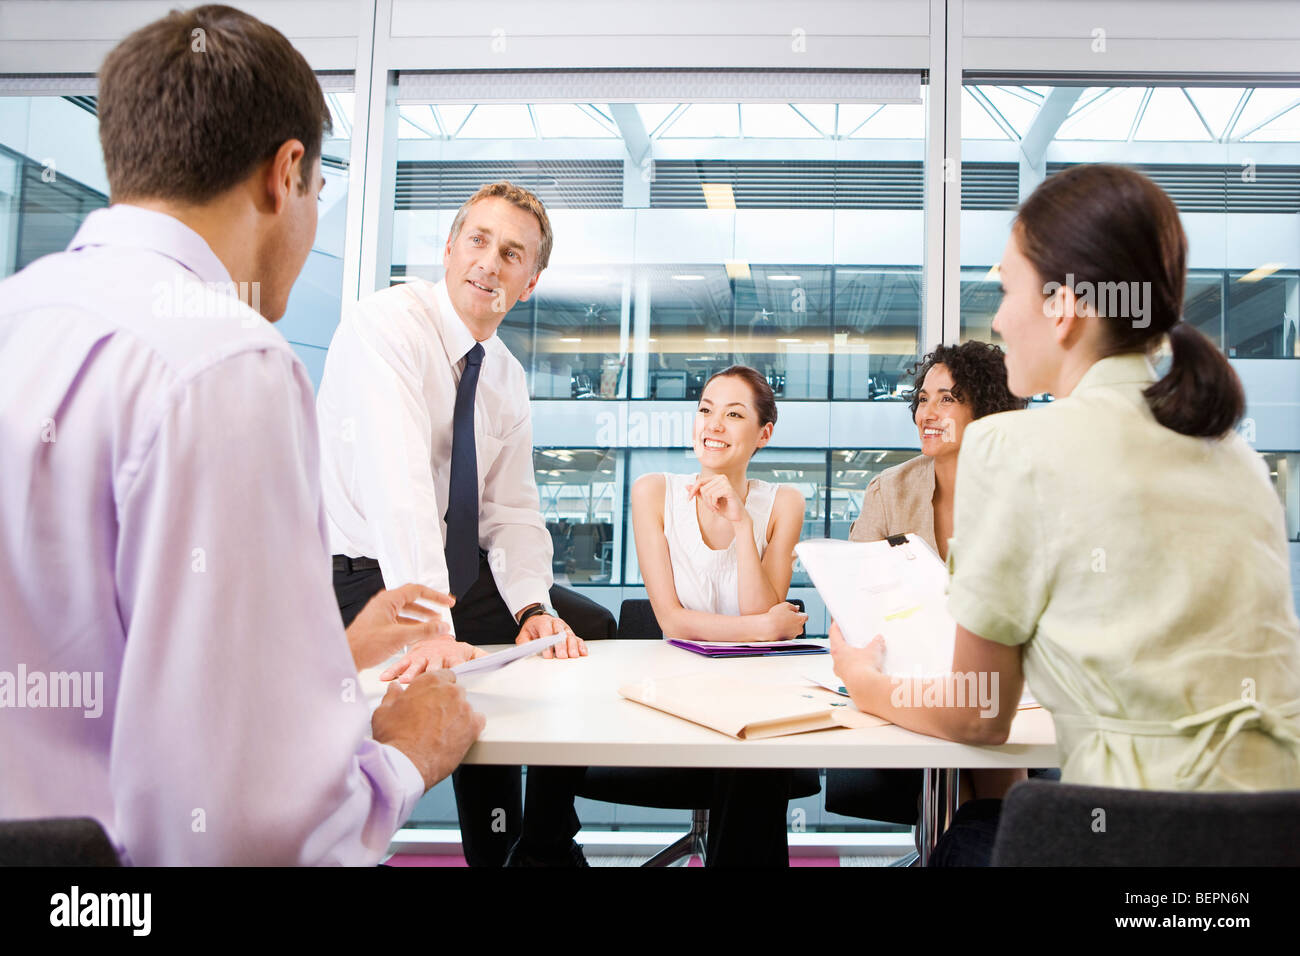 A corporate business meeting - Stock Image